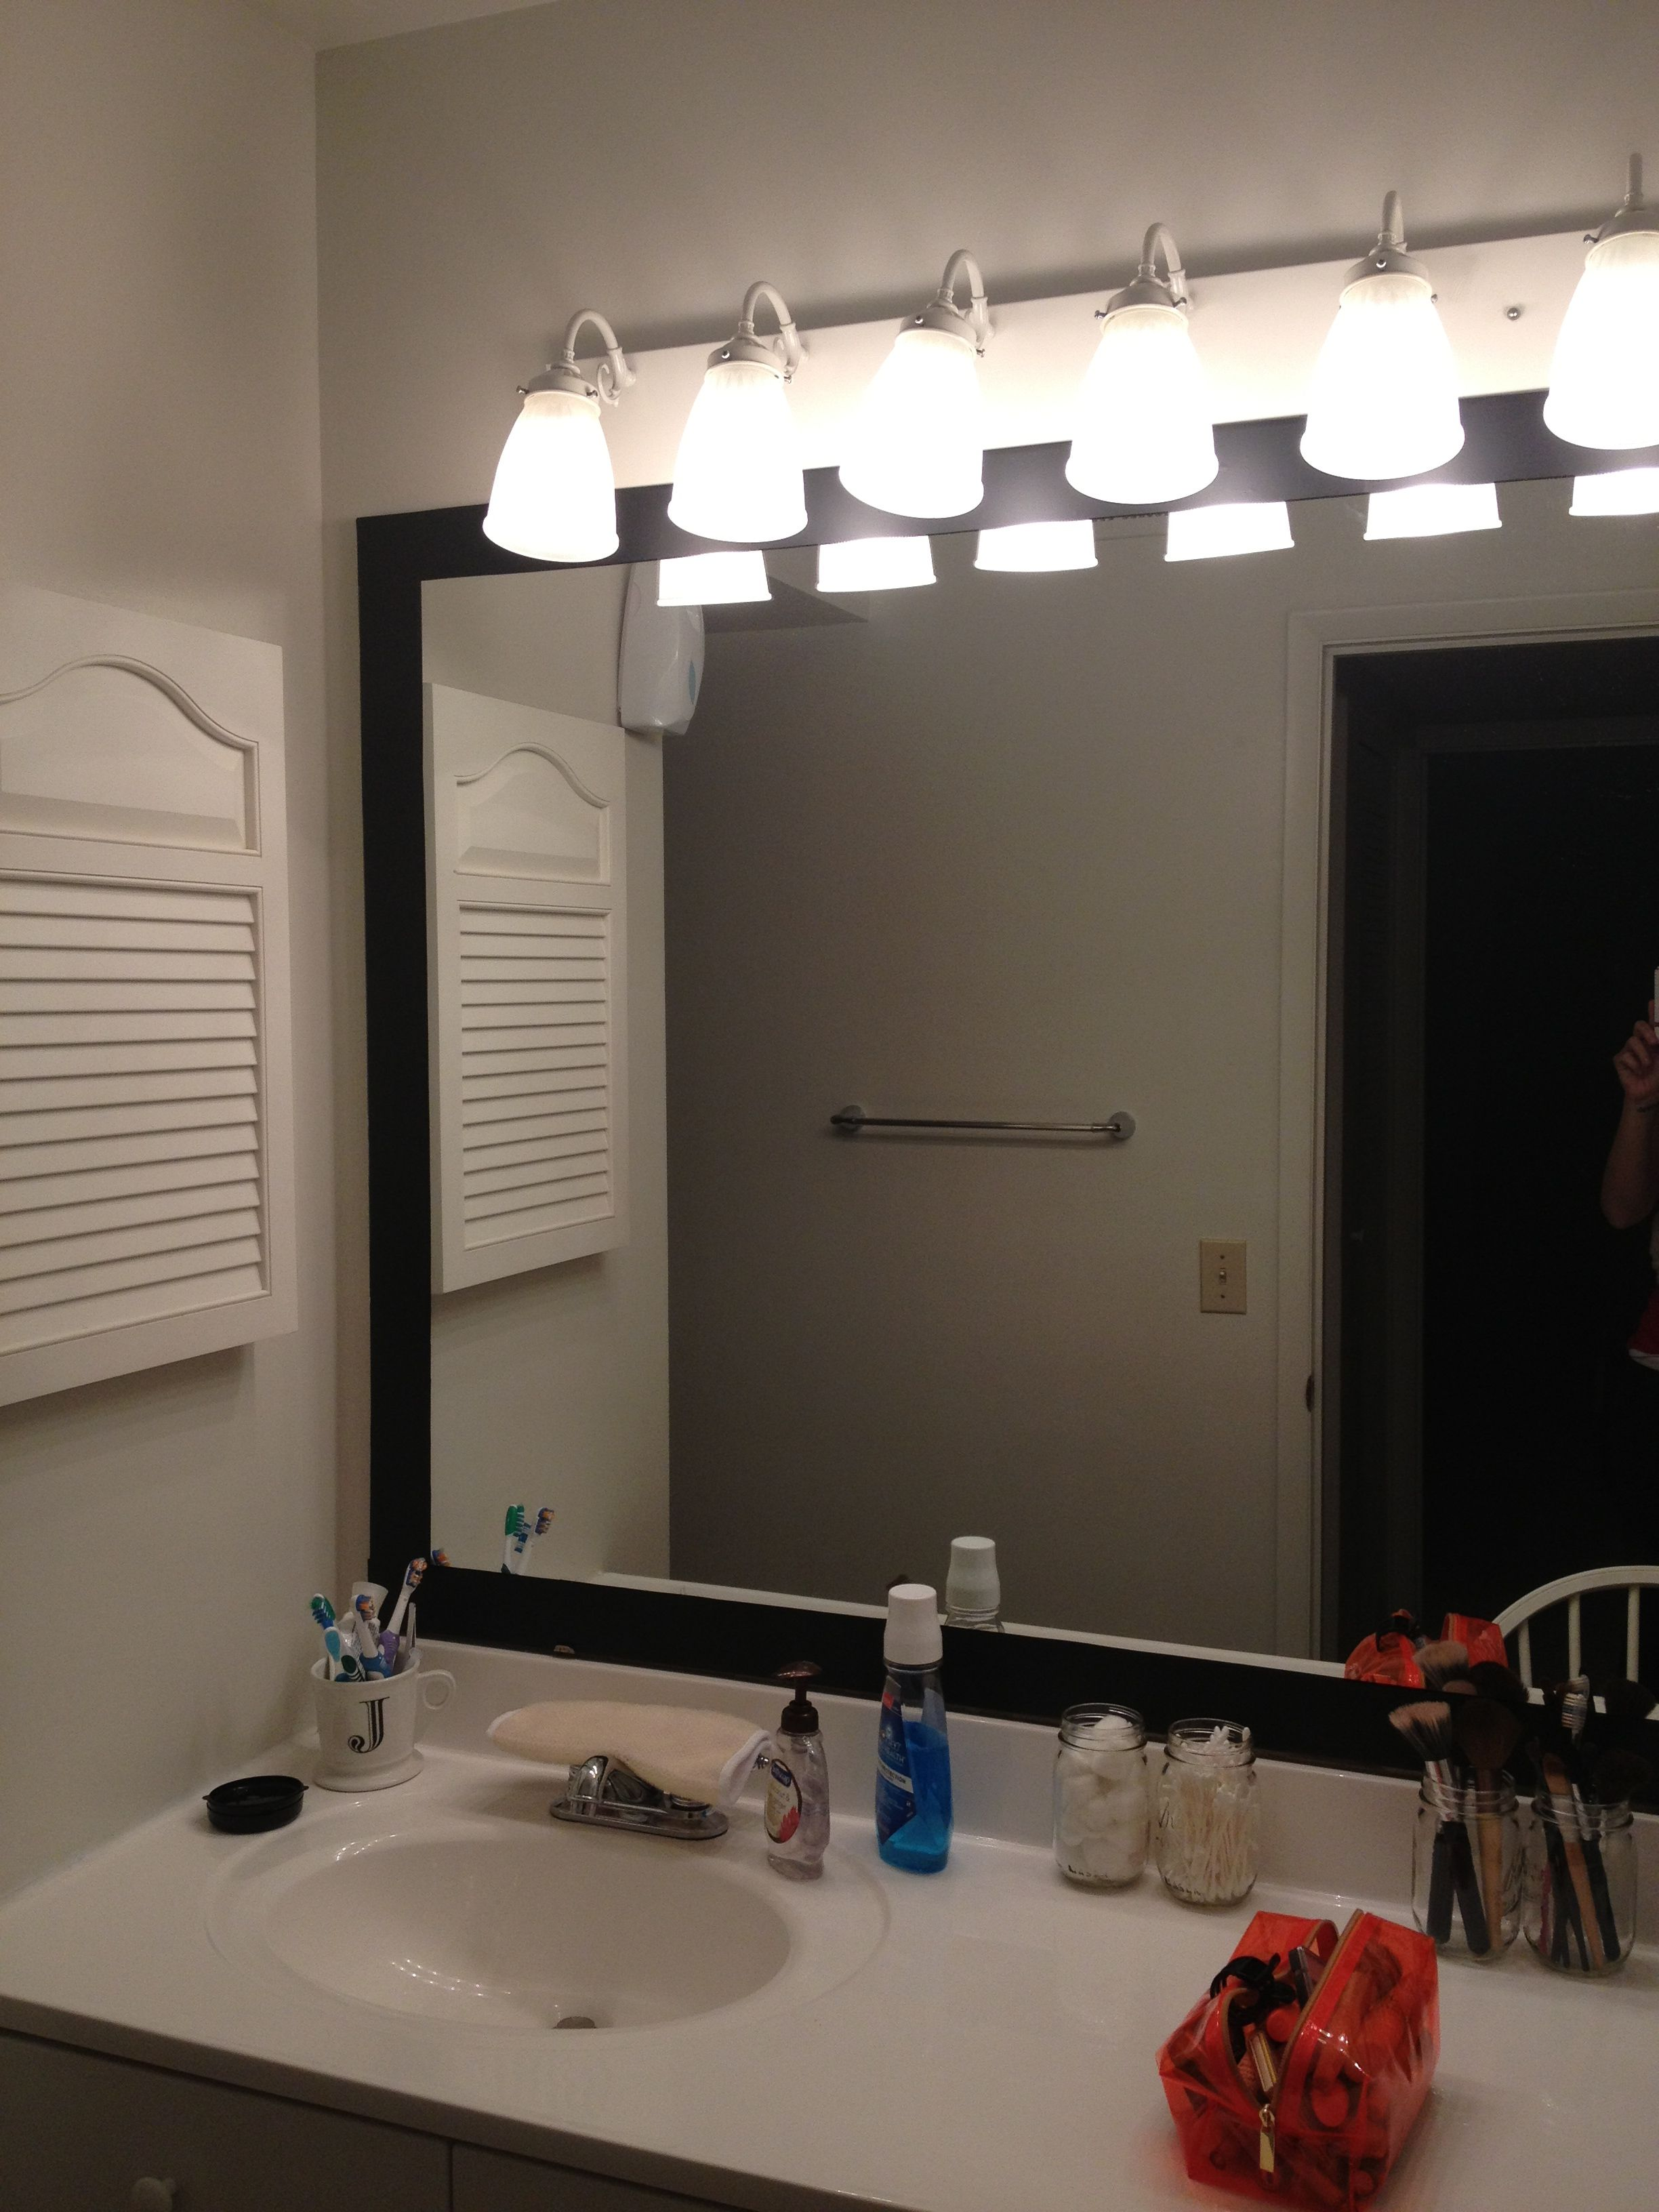 Dyi Temporary Mirror Frame For Apartment I Used Black Contact